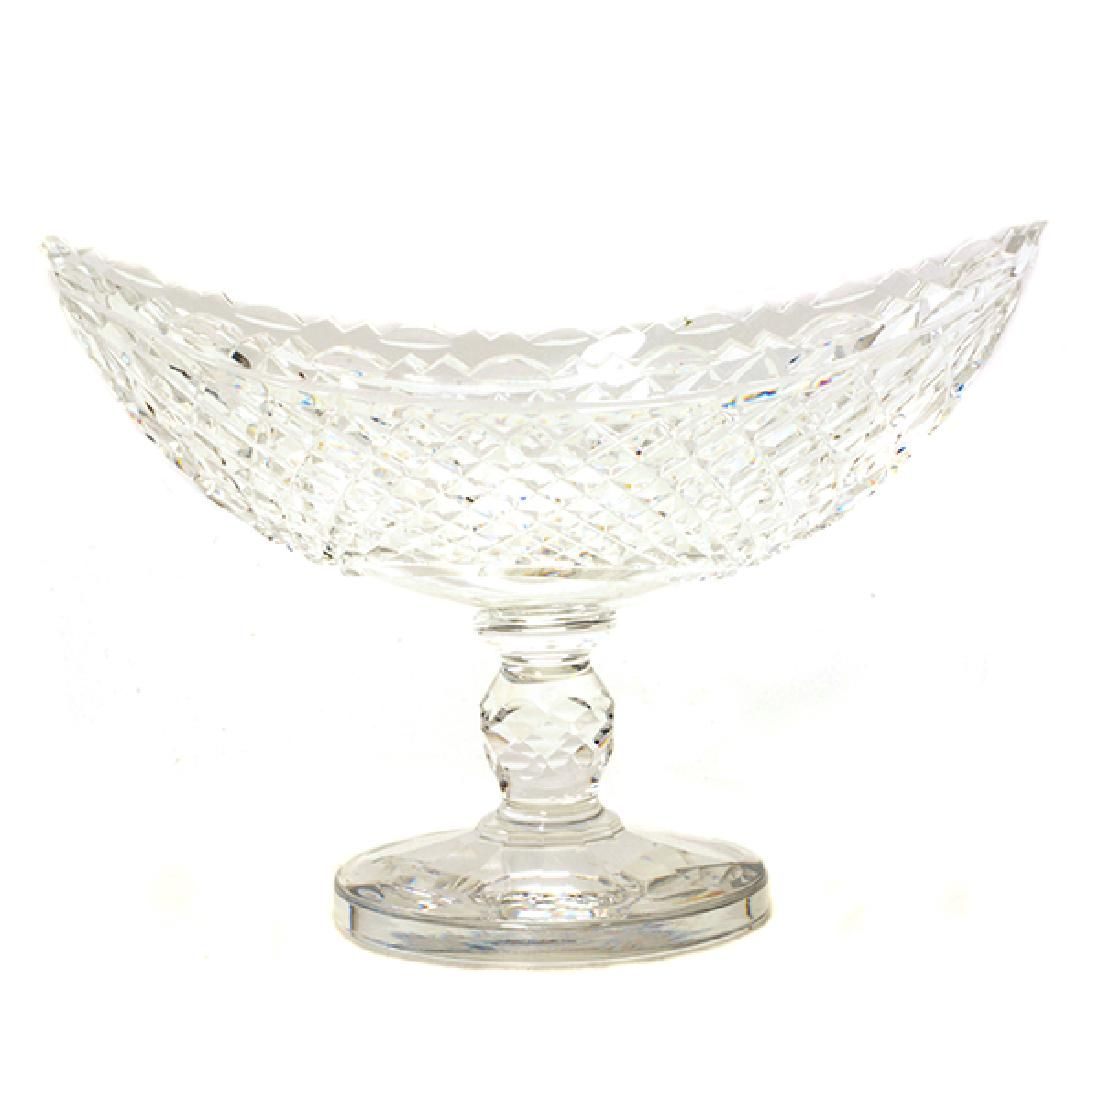 Waterford Cut Crystal Compote